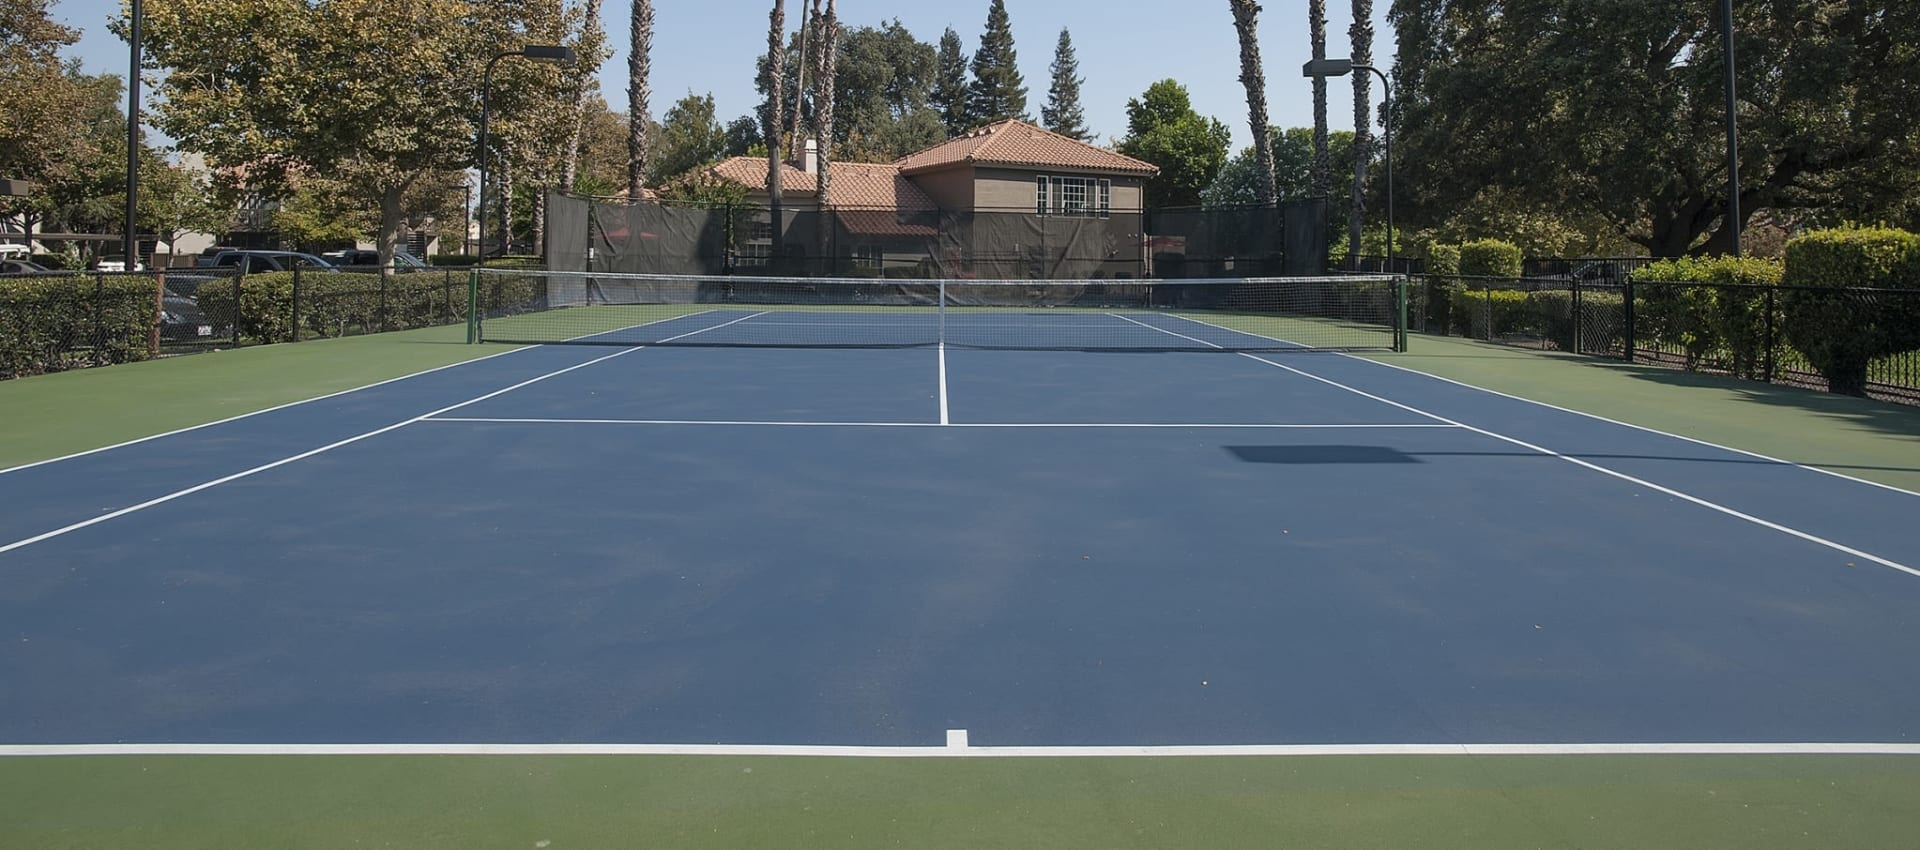 Tennis at Shore Park at Riverlake in Sacramento, California